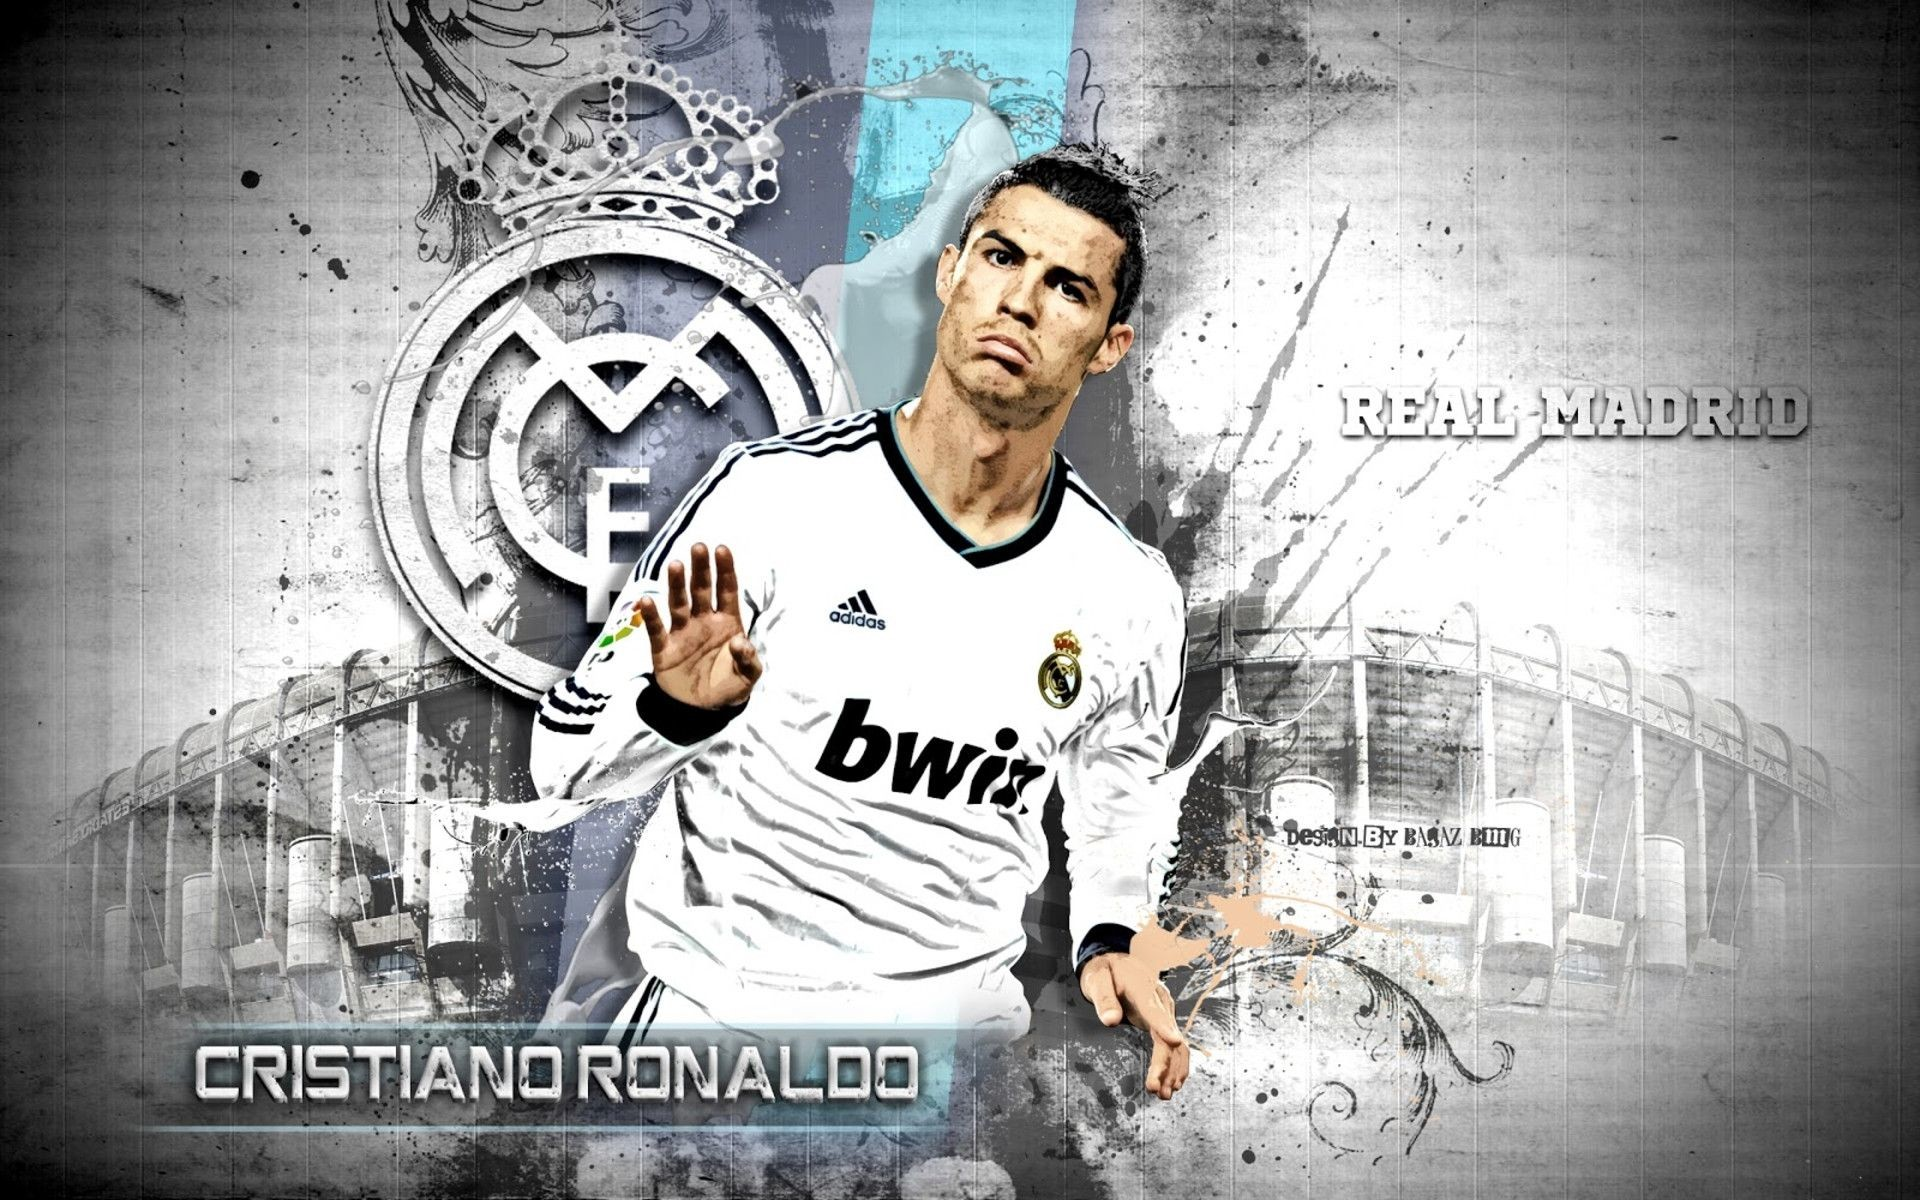 1920x1200 Hd Ronaldo Images, Free Wallpapers, Jersey, Hala Madrid, Marca, Vavosmi  Madrid